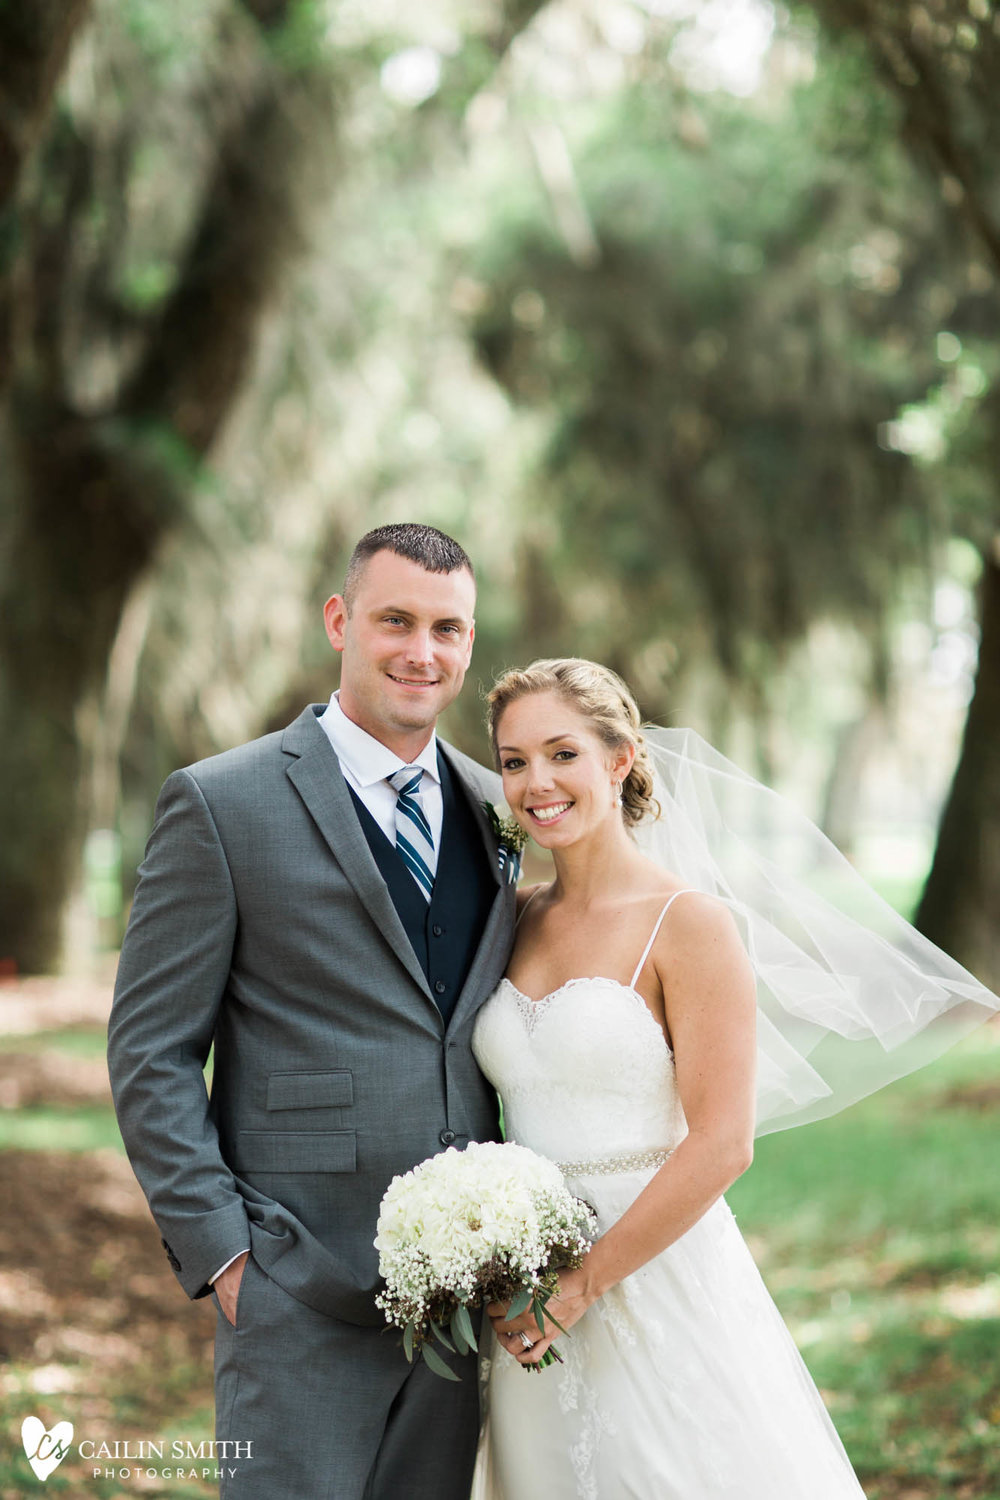 Sarah_Justin_St_Simons_Island_Lighthouse_Wedding_Photography_031.jpg